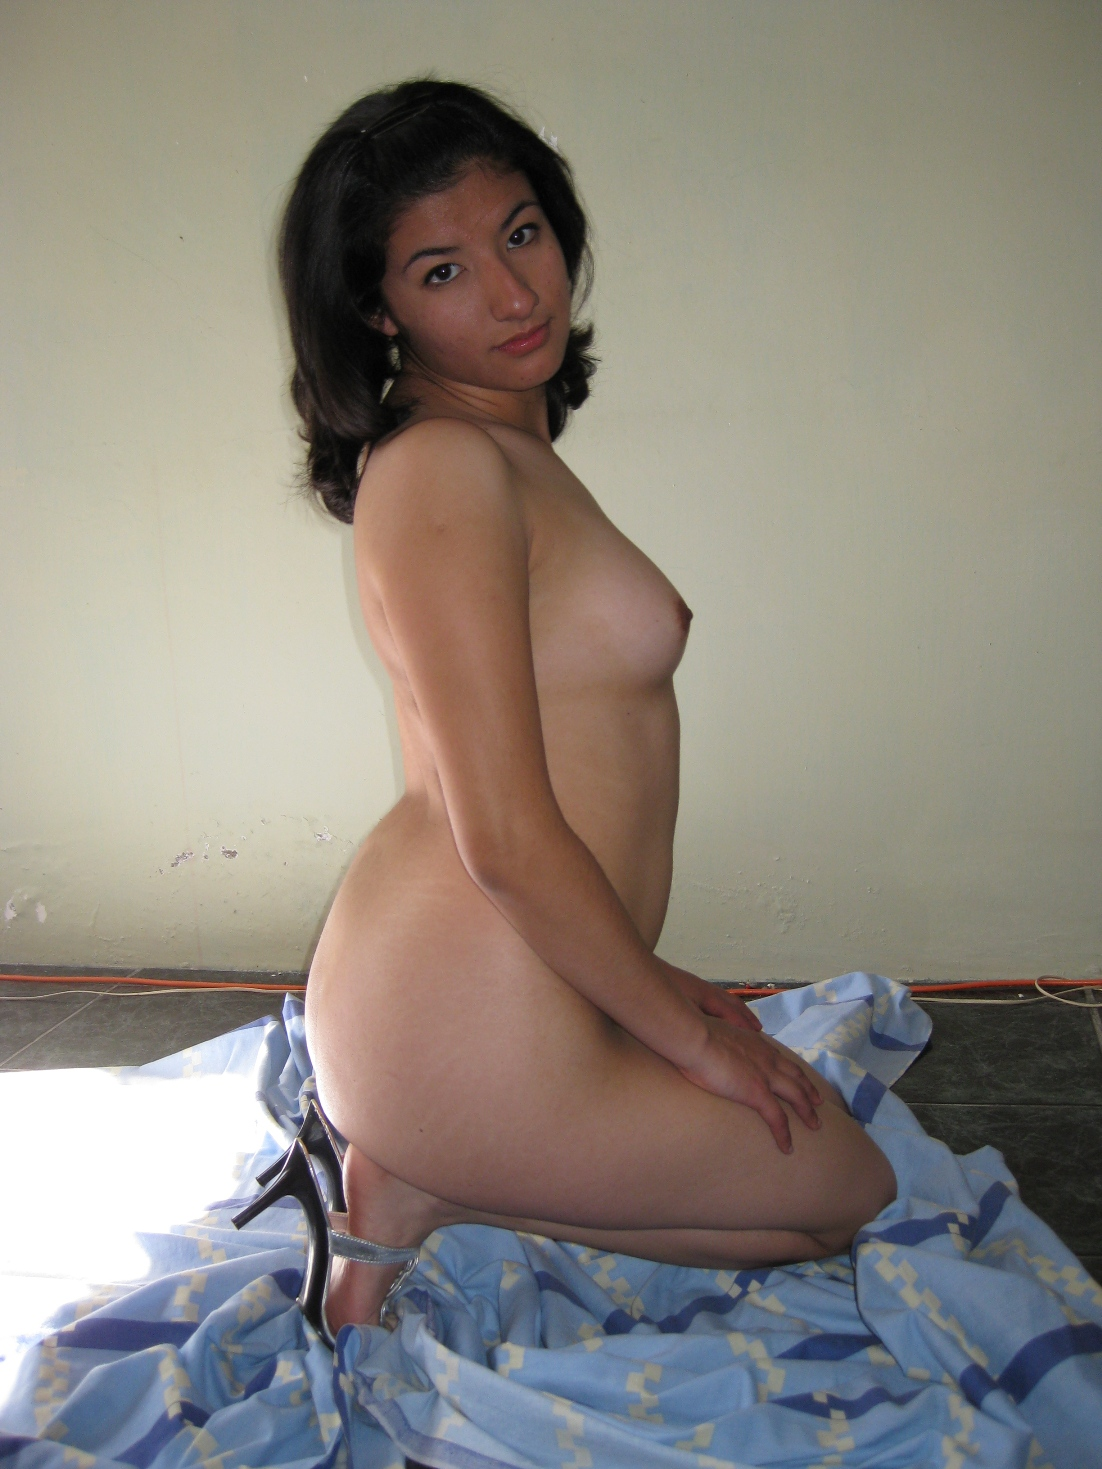 Real amateur hairy pussy on tumblr